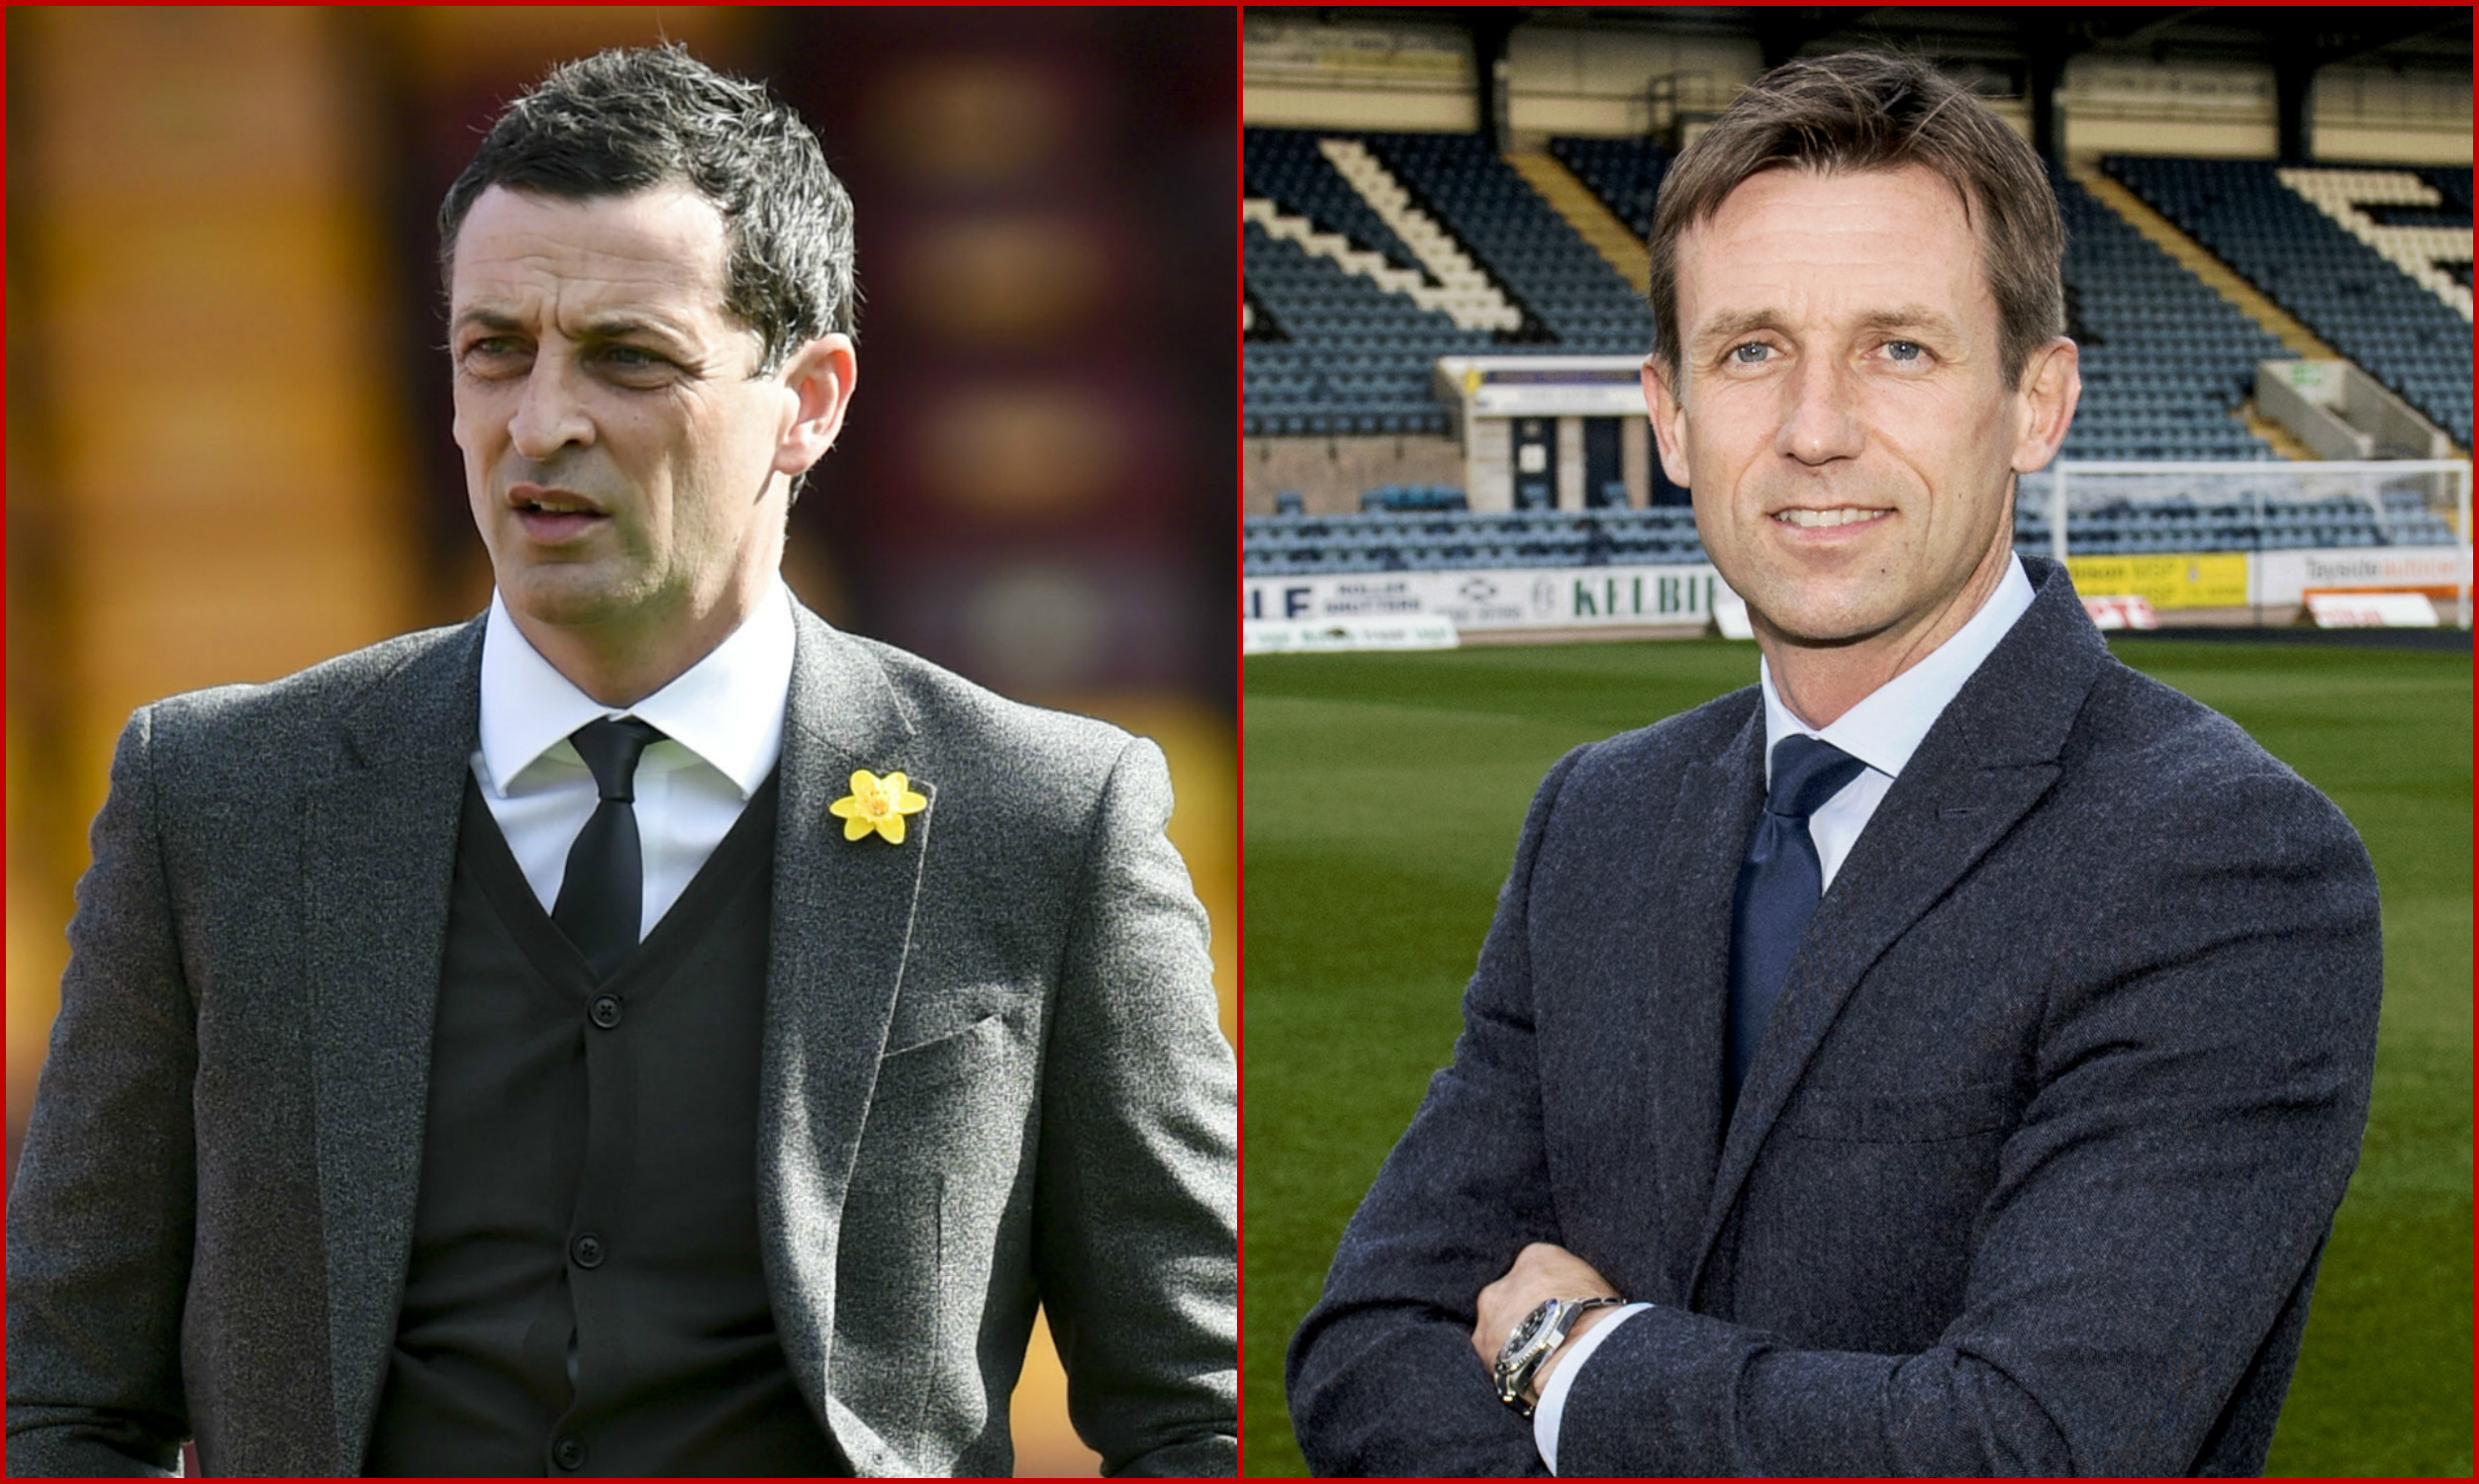 Jack Ross and Neil McCann will go head-to-head in a friendly